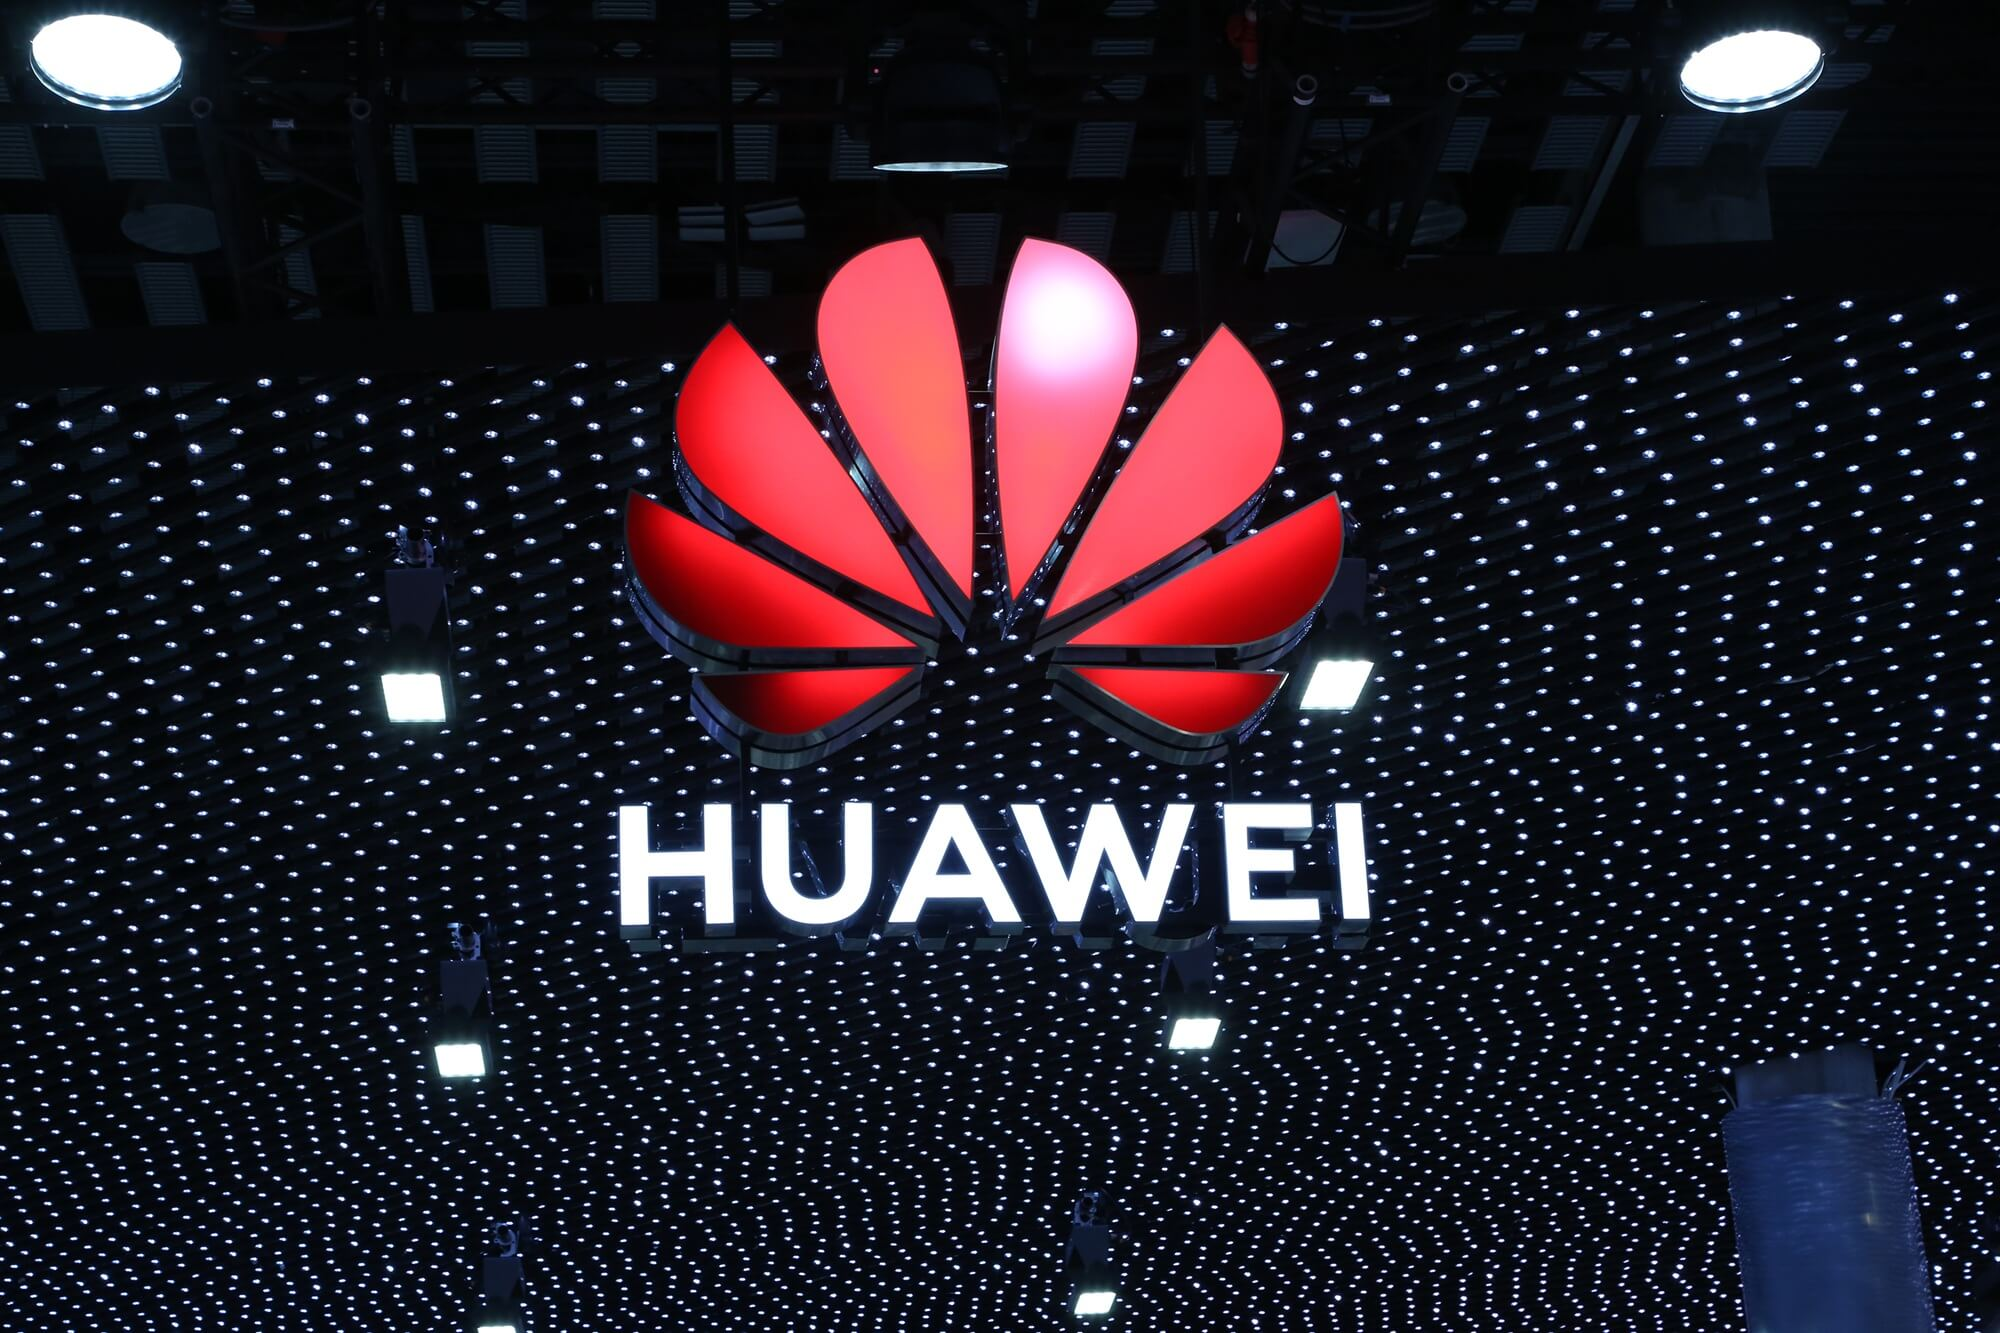 Huawei takes hit in second quarter 2019, iPhone loyalty is down